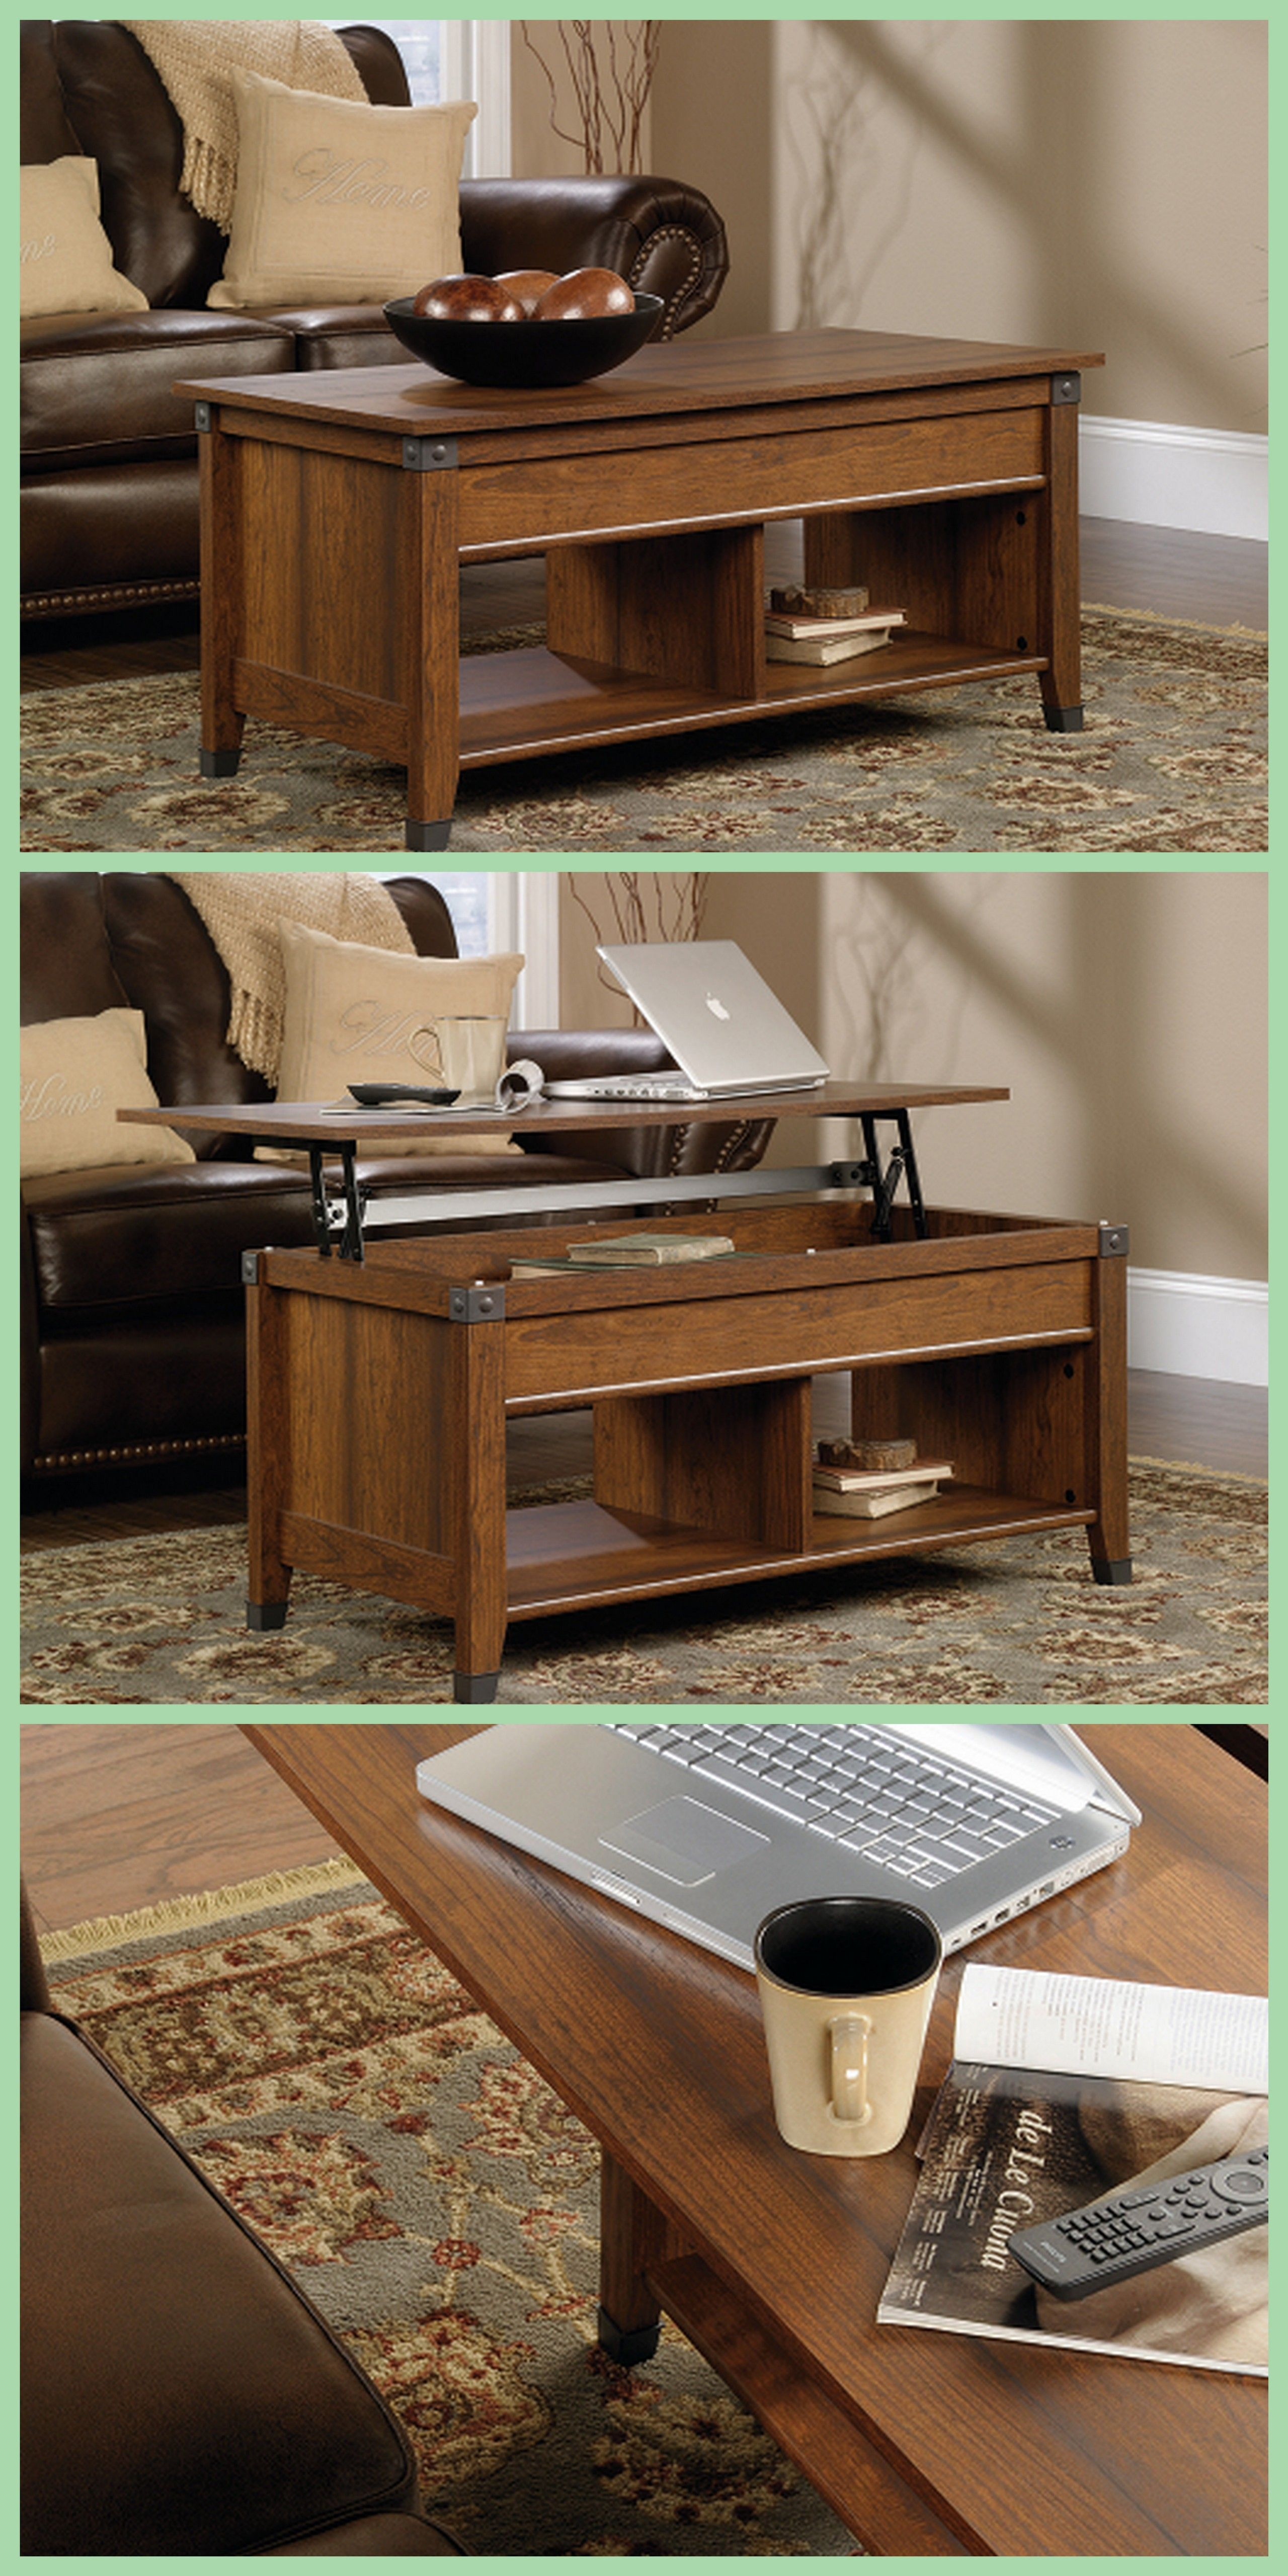 Lift Top Coffee Table Coffee Table Home Decor Furniture Coffee Table With Storage [ 5120 x 2560 Pixel ]